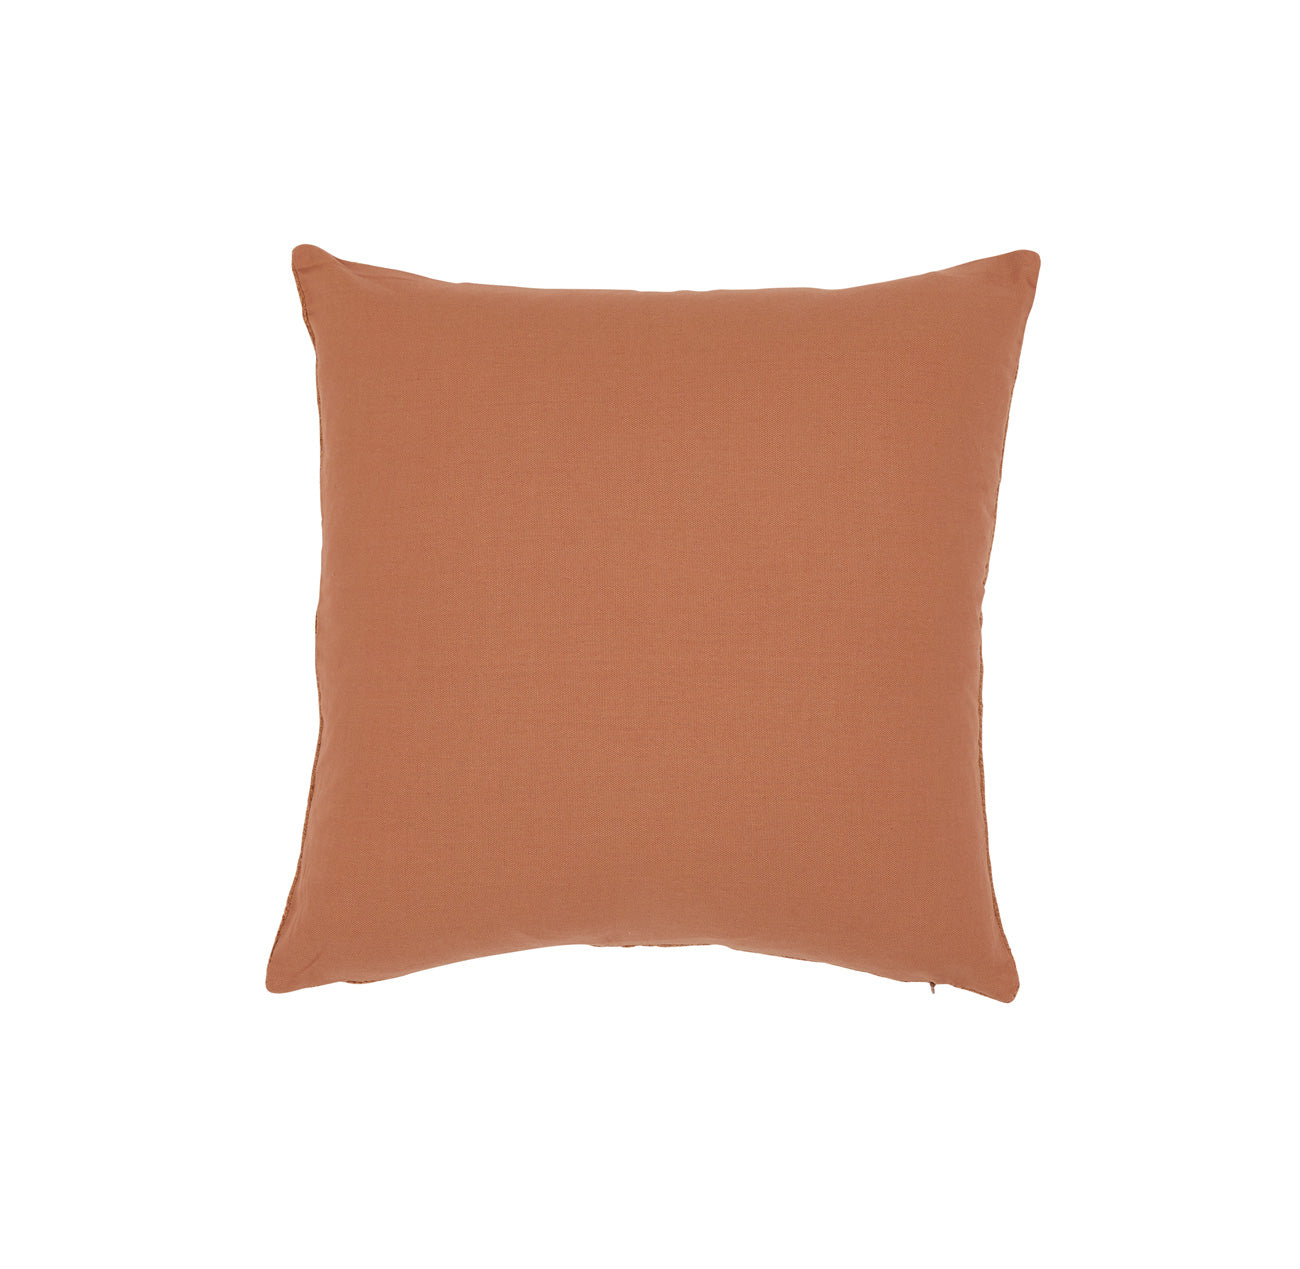 Brown Boob Pillow